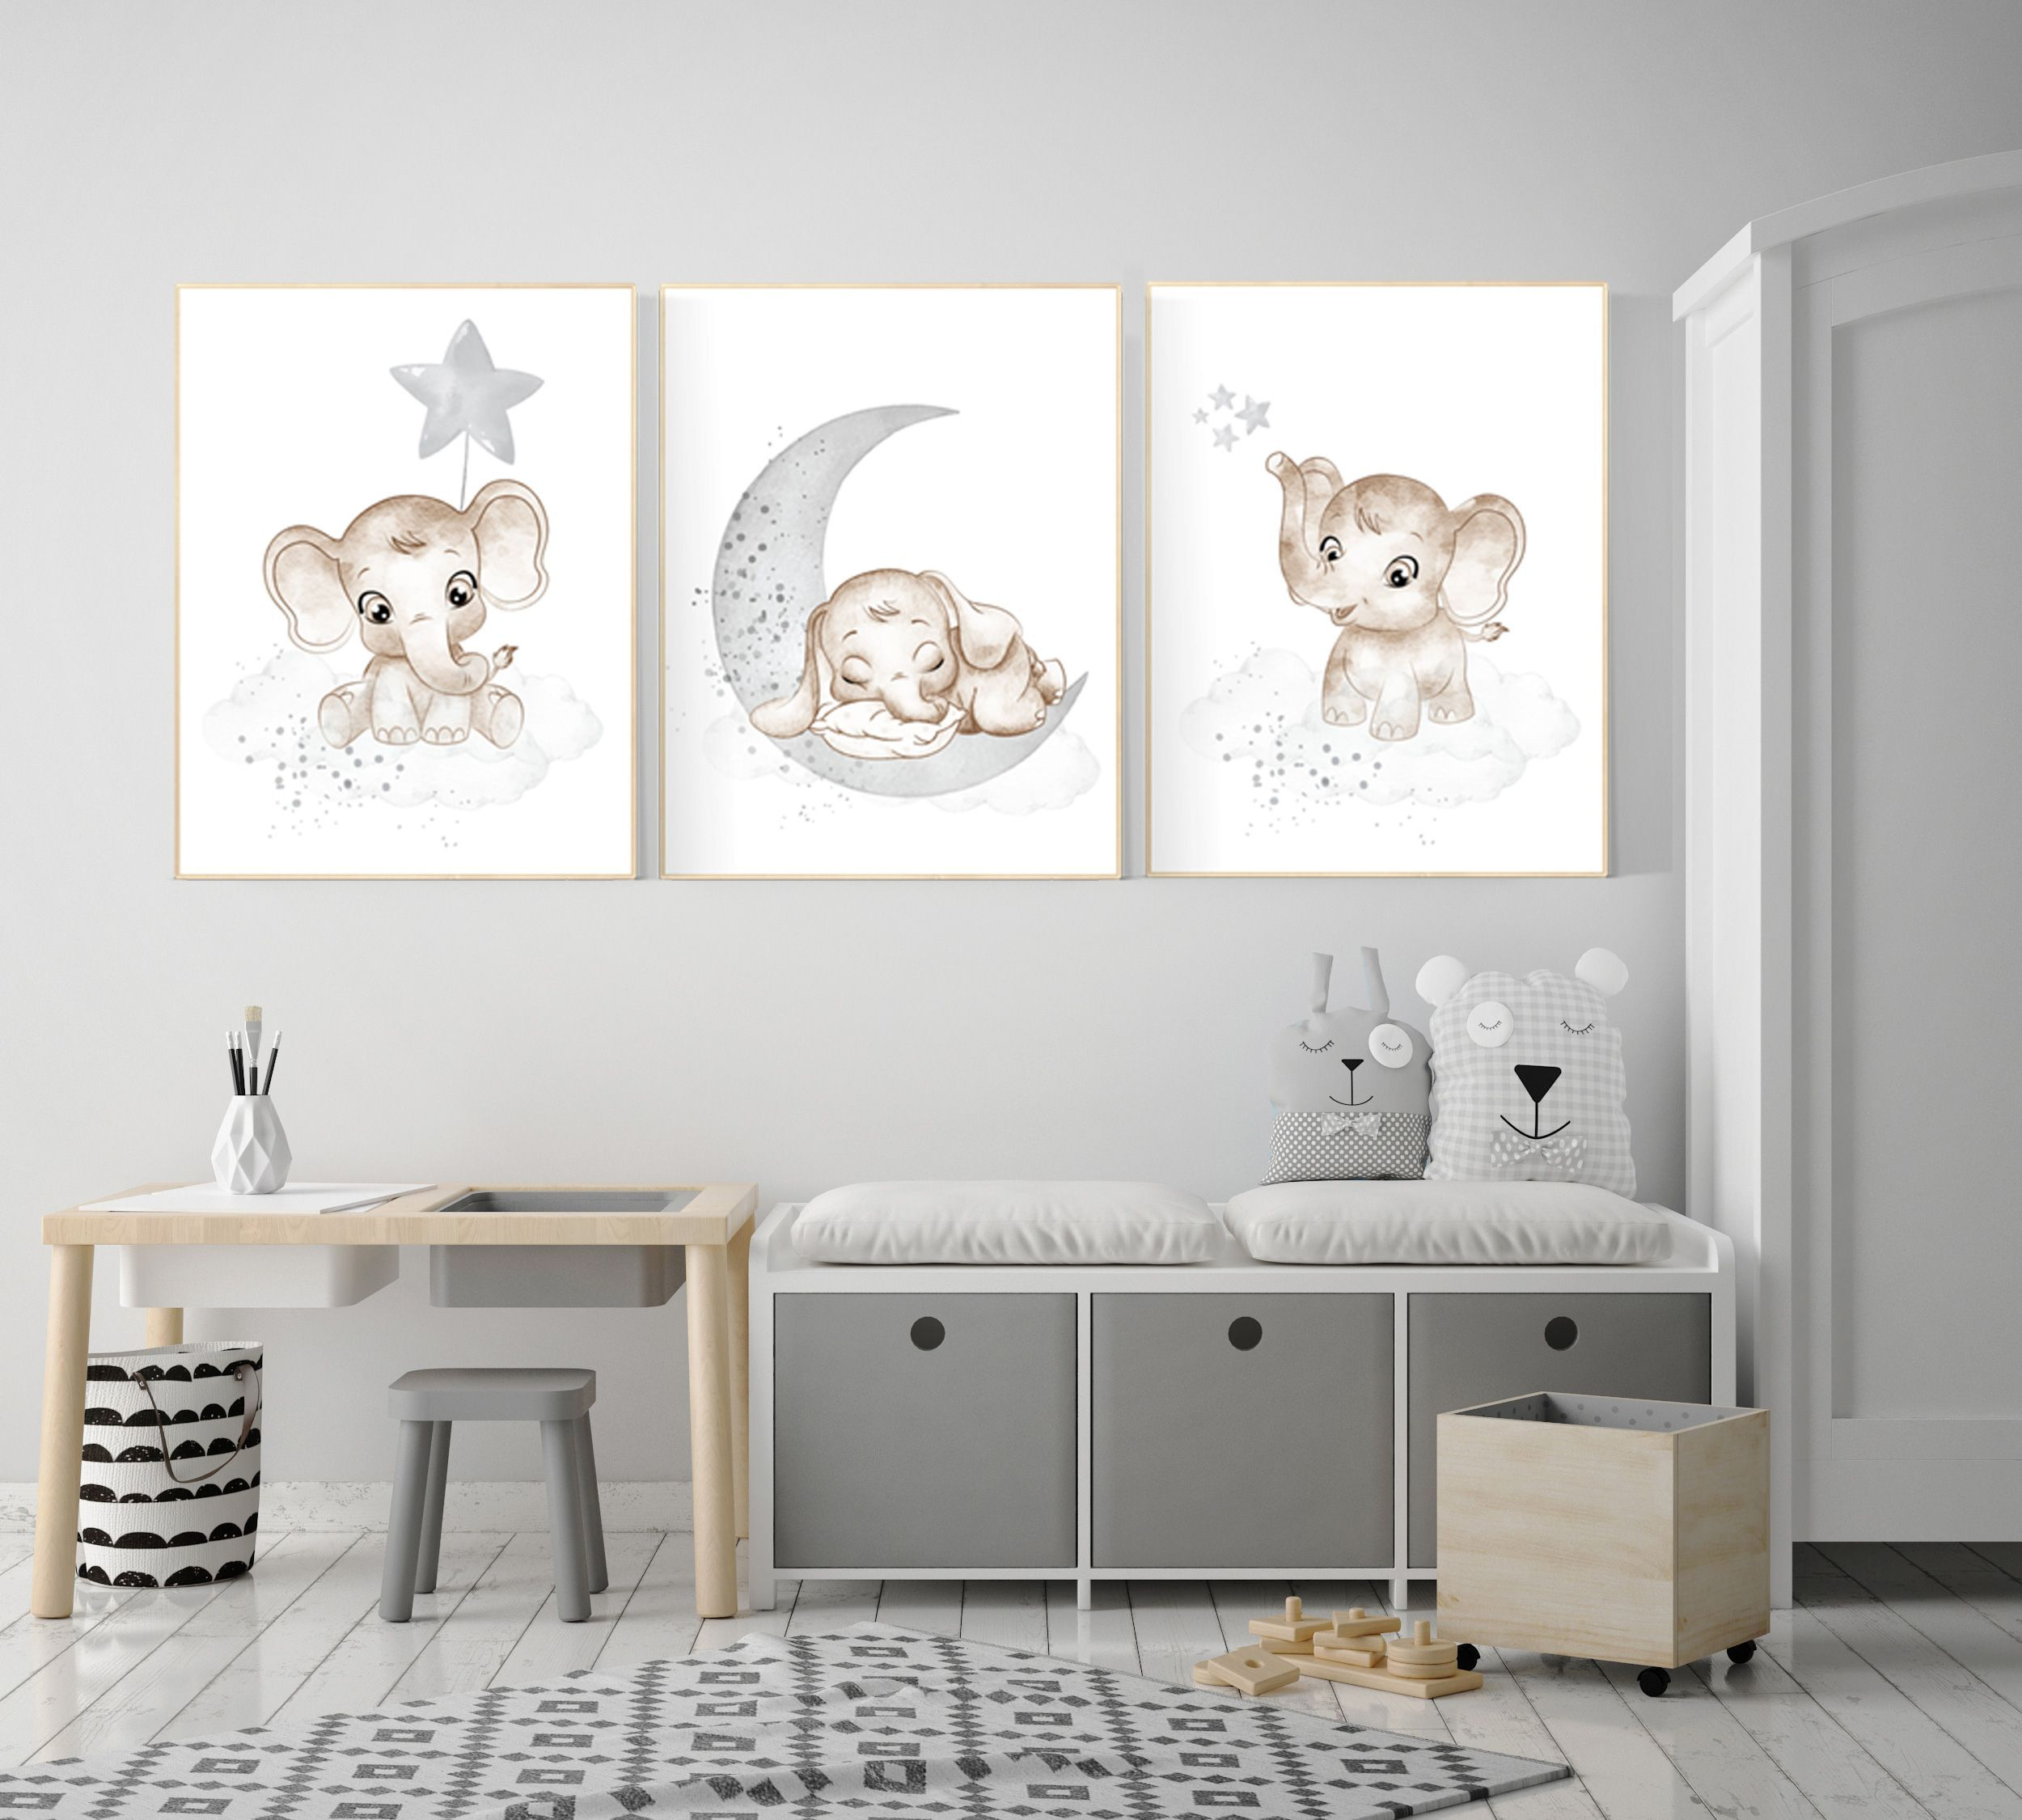 Grey nursery wall decor gender neutral elephant nursery wall decor